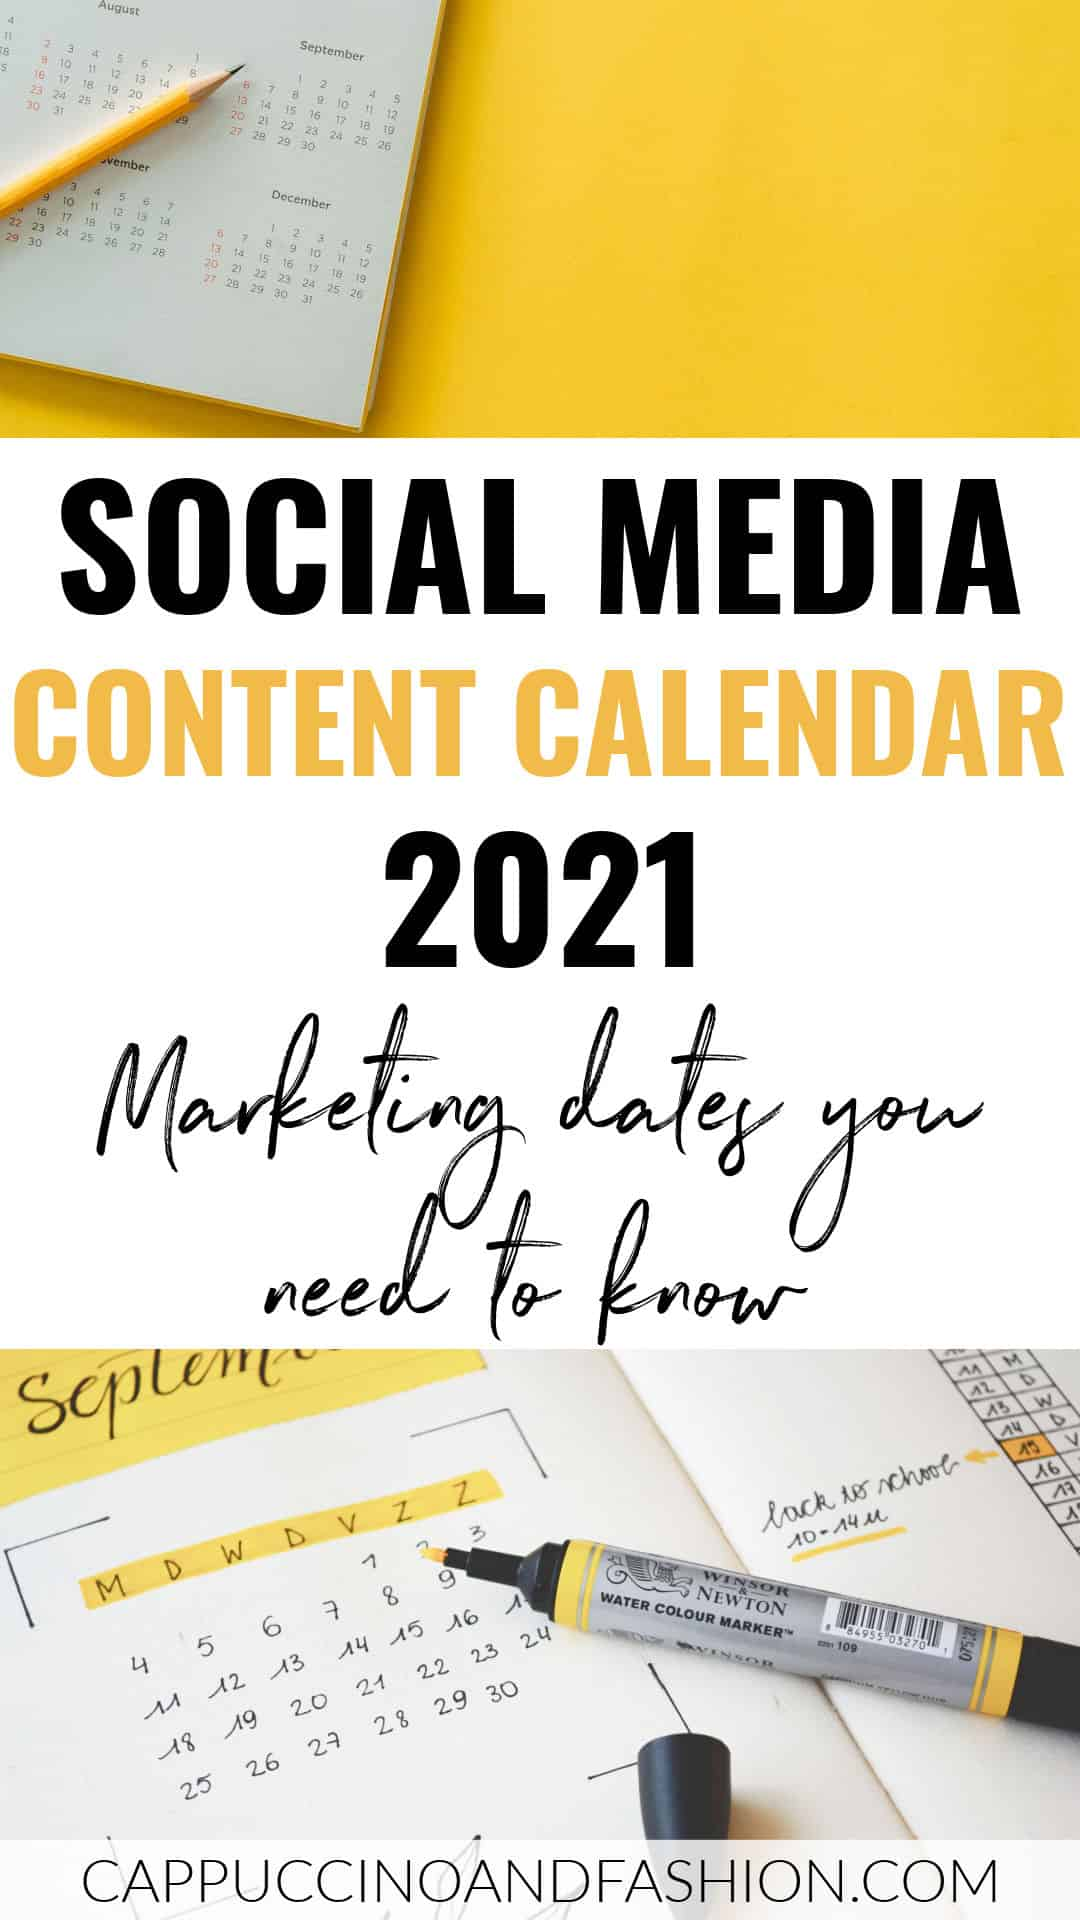 Social Media Calendar 2021 Marketing Dates UK